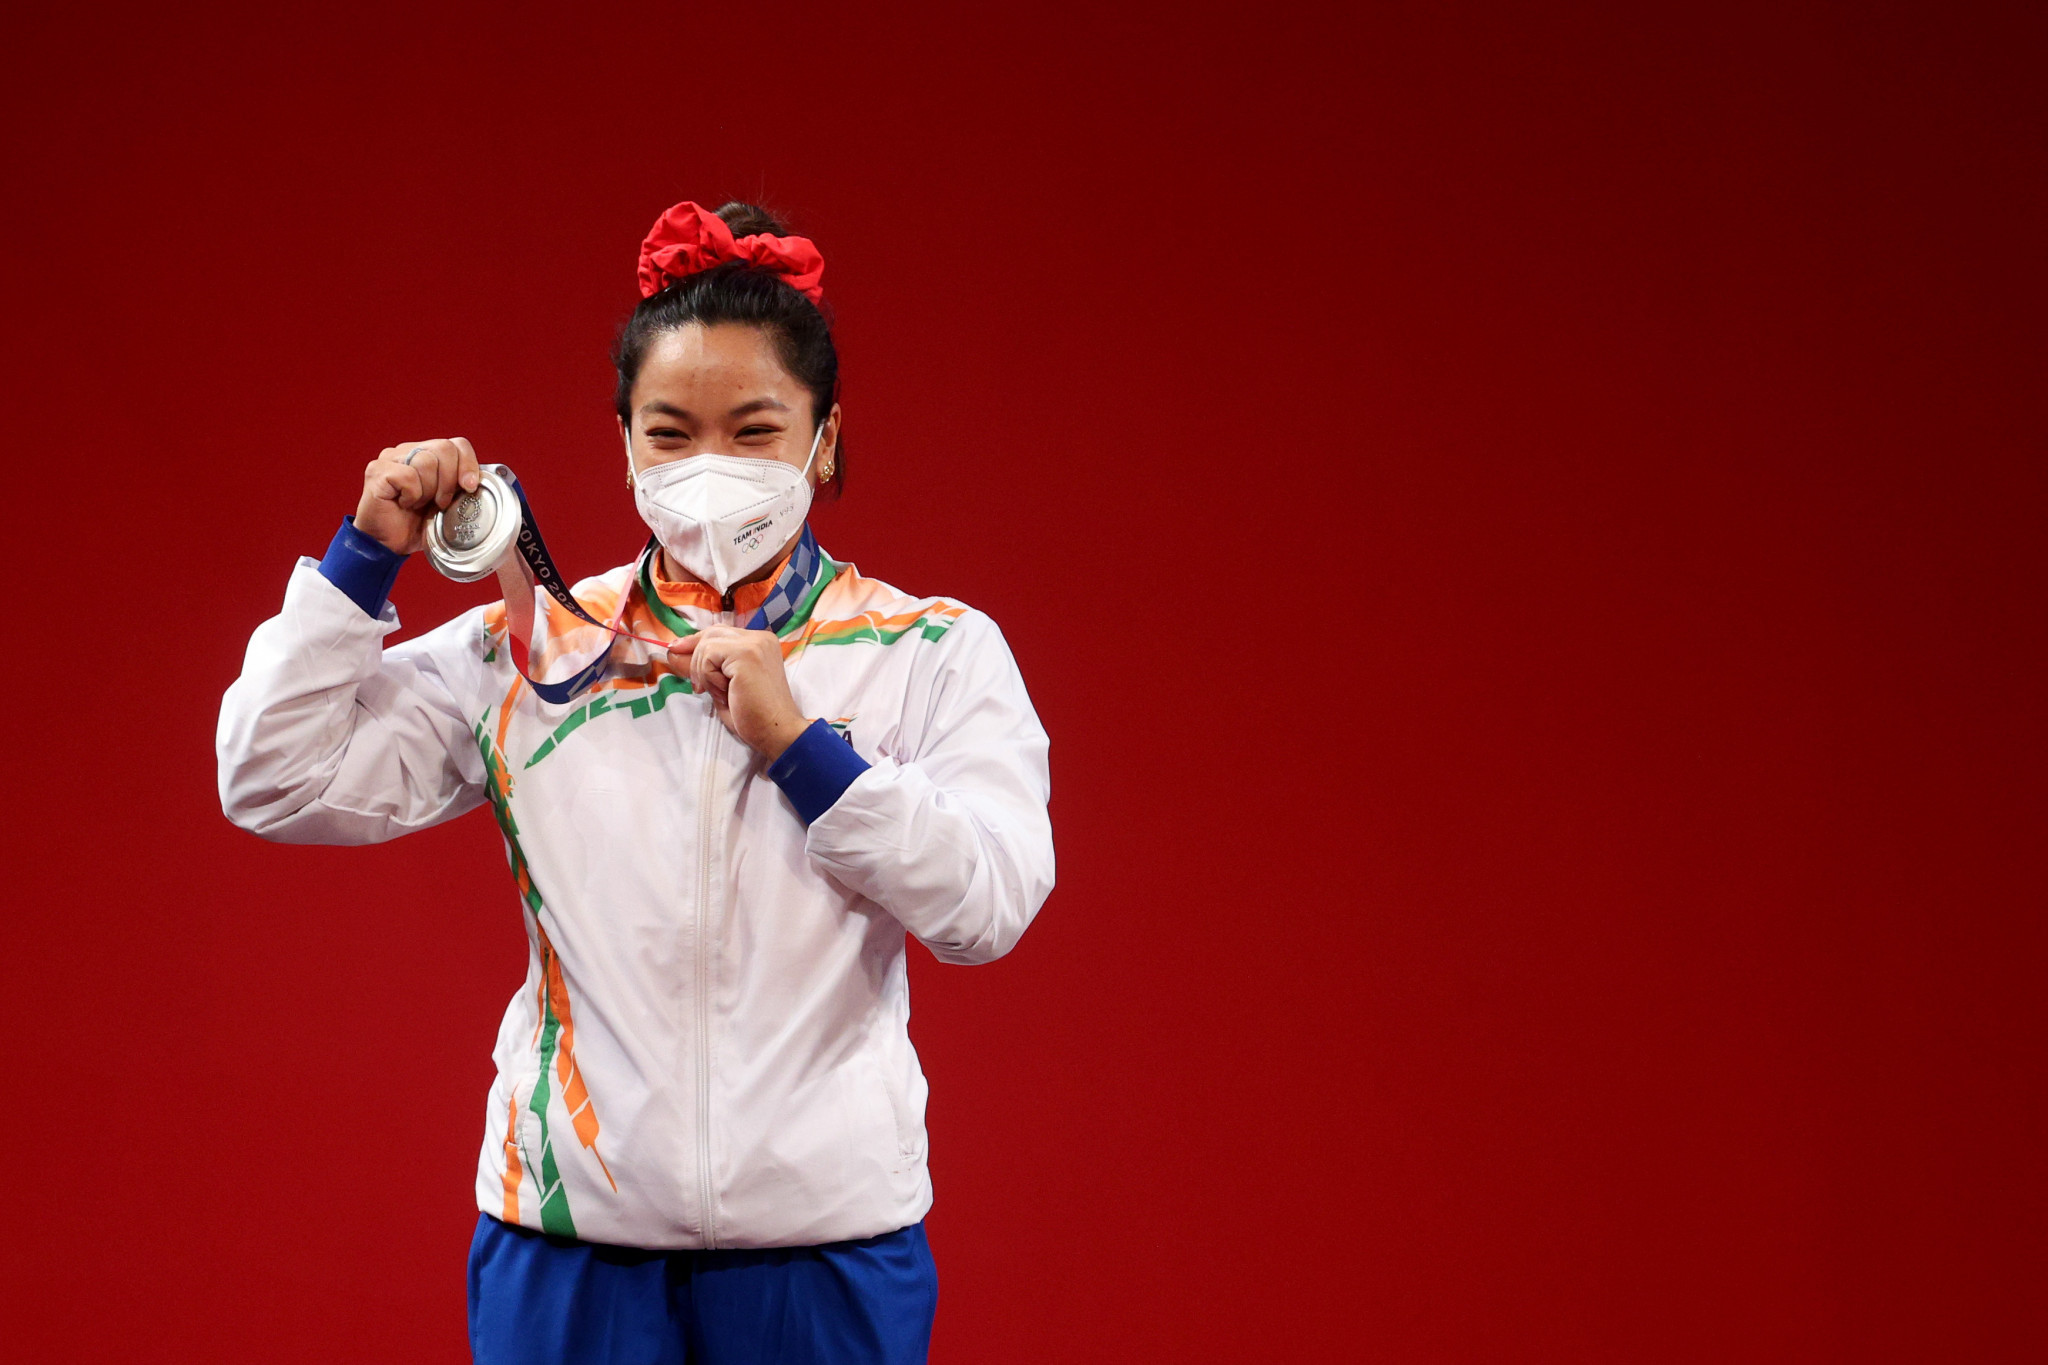 Mirabai Chanu now has her sights set on the Commonwealth Games and Asian Games ©Getty Images